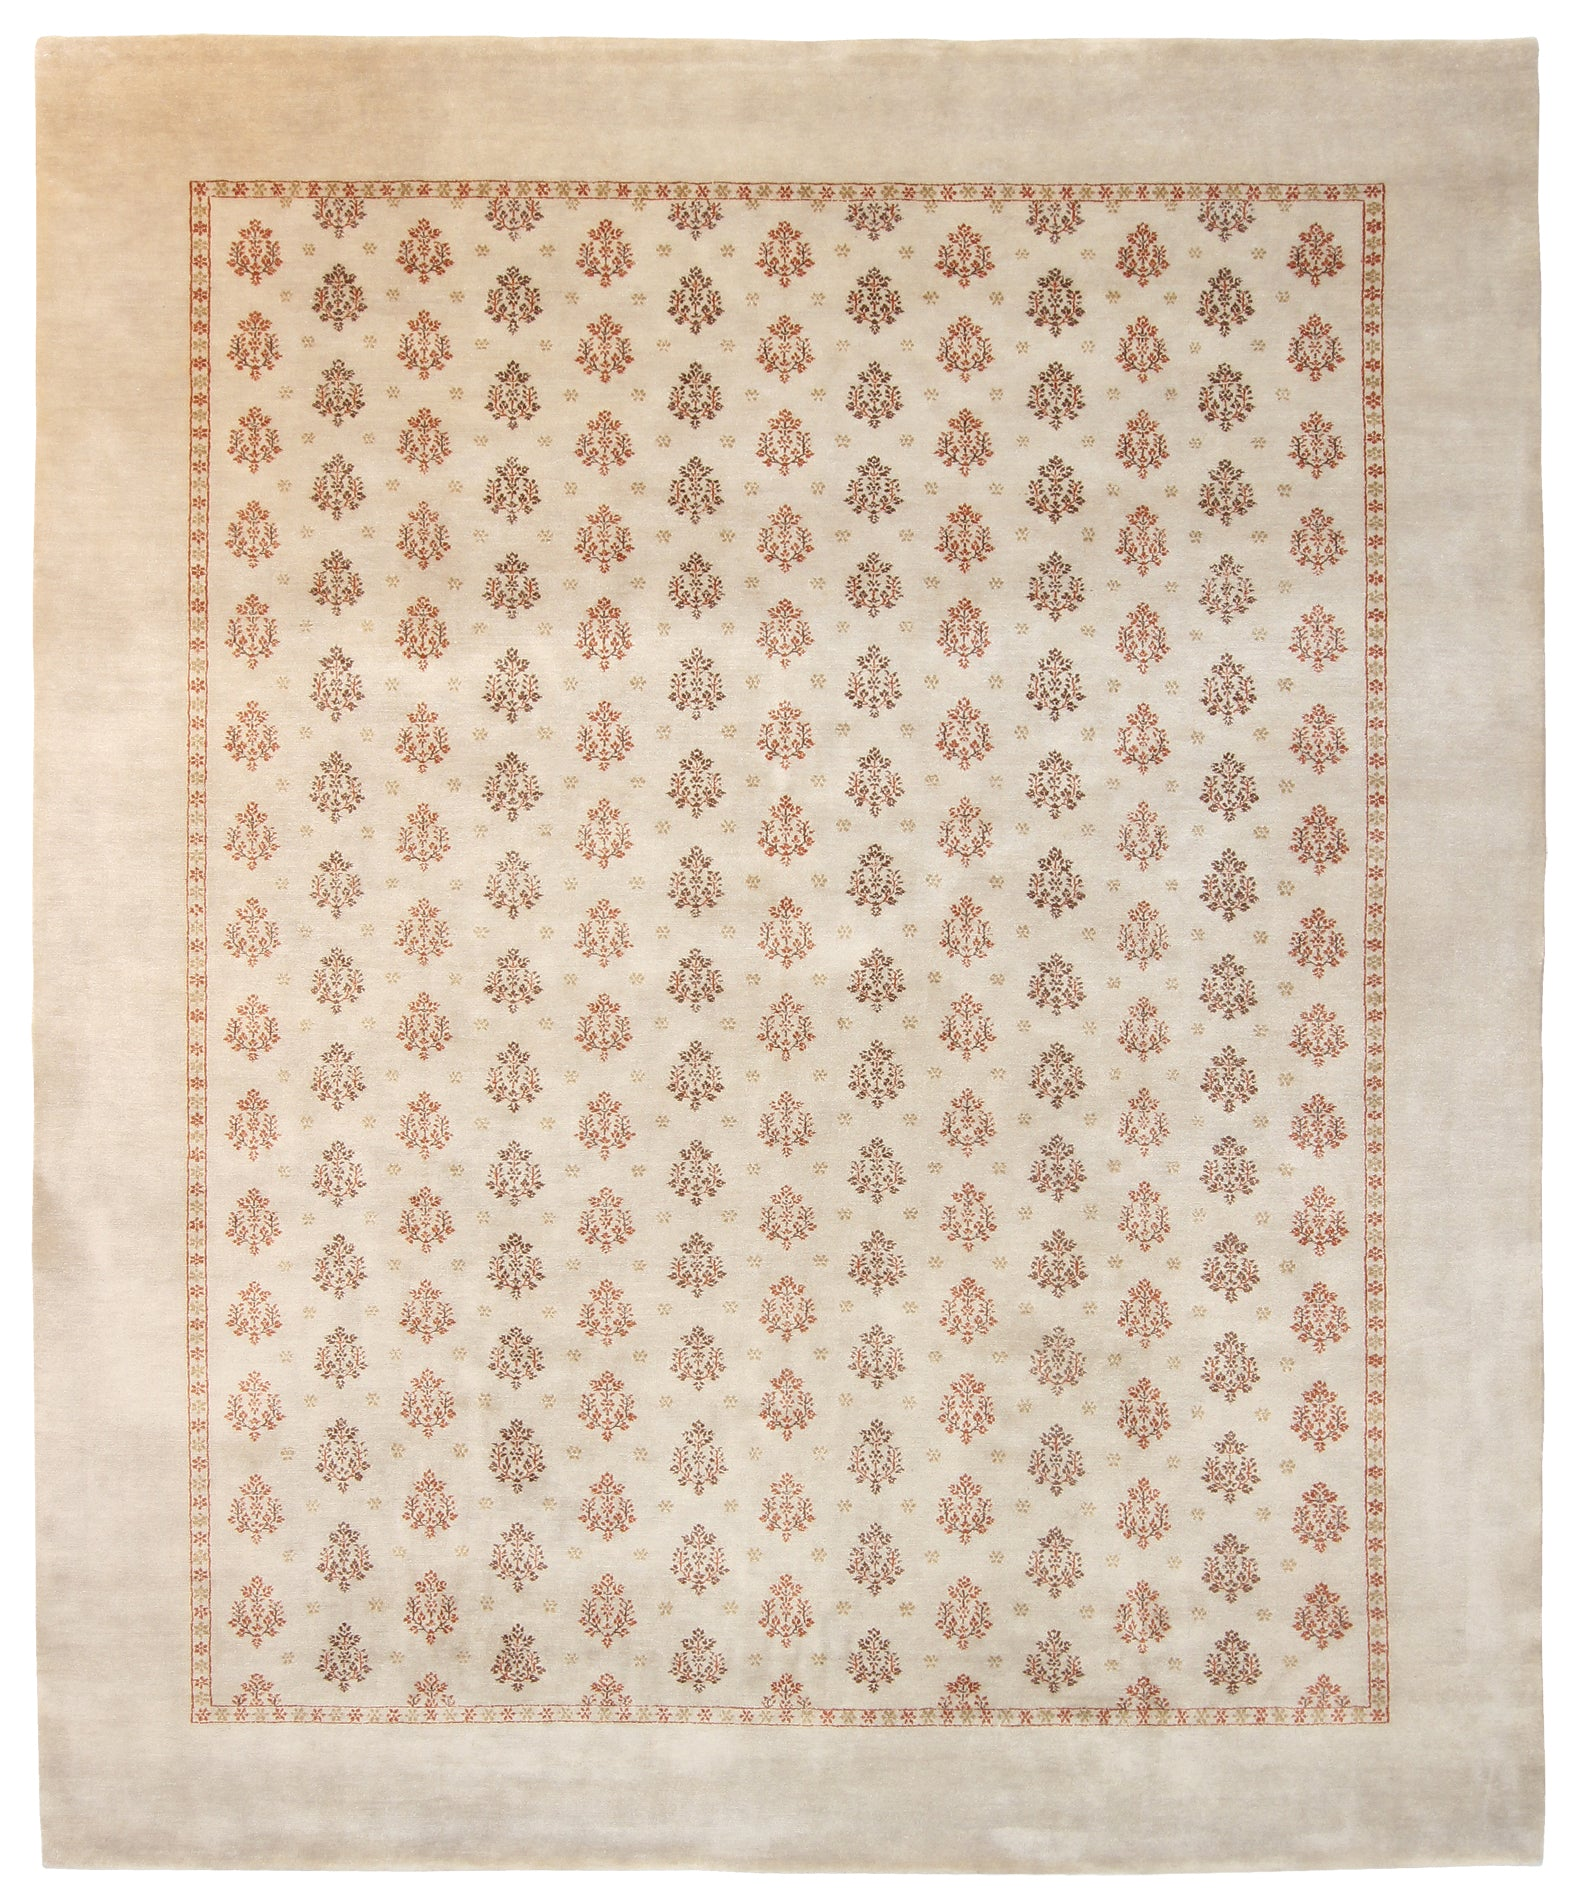 Repeating Floral Rug-Turco Persian Rug Company Inc.